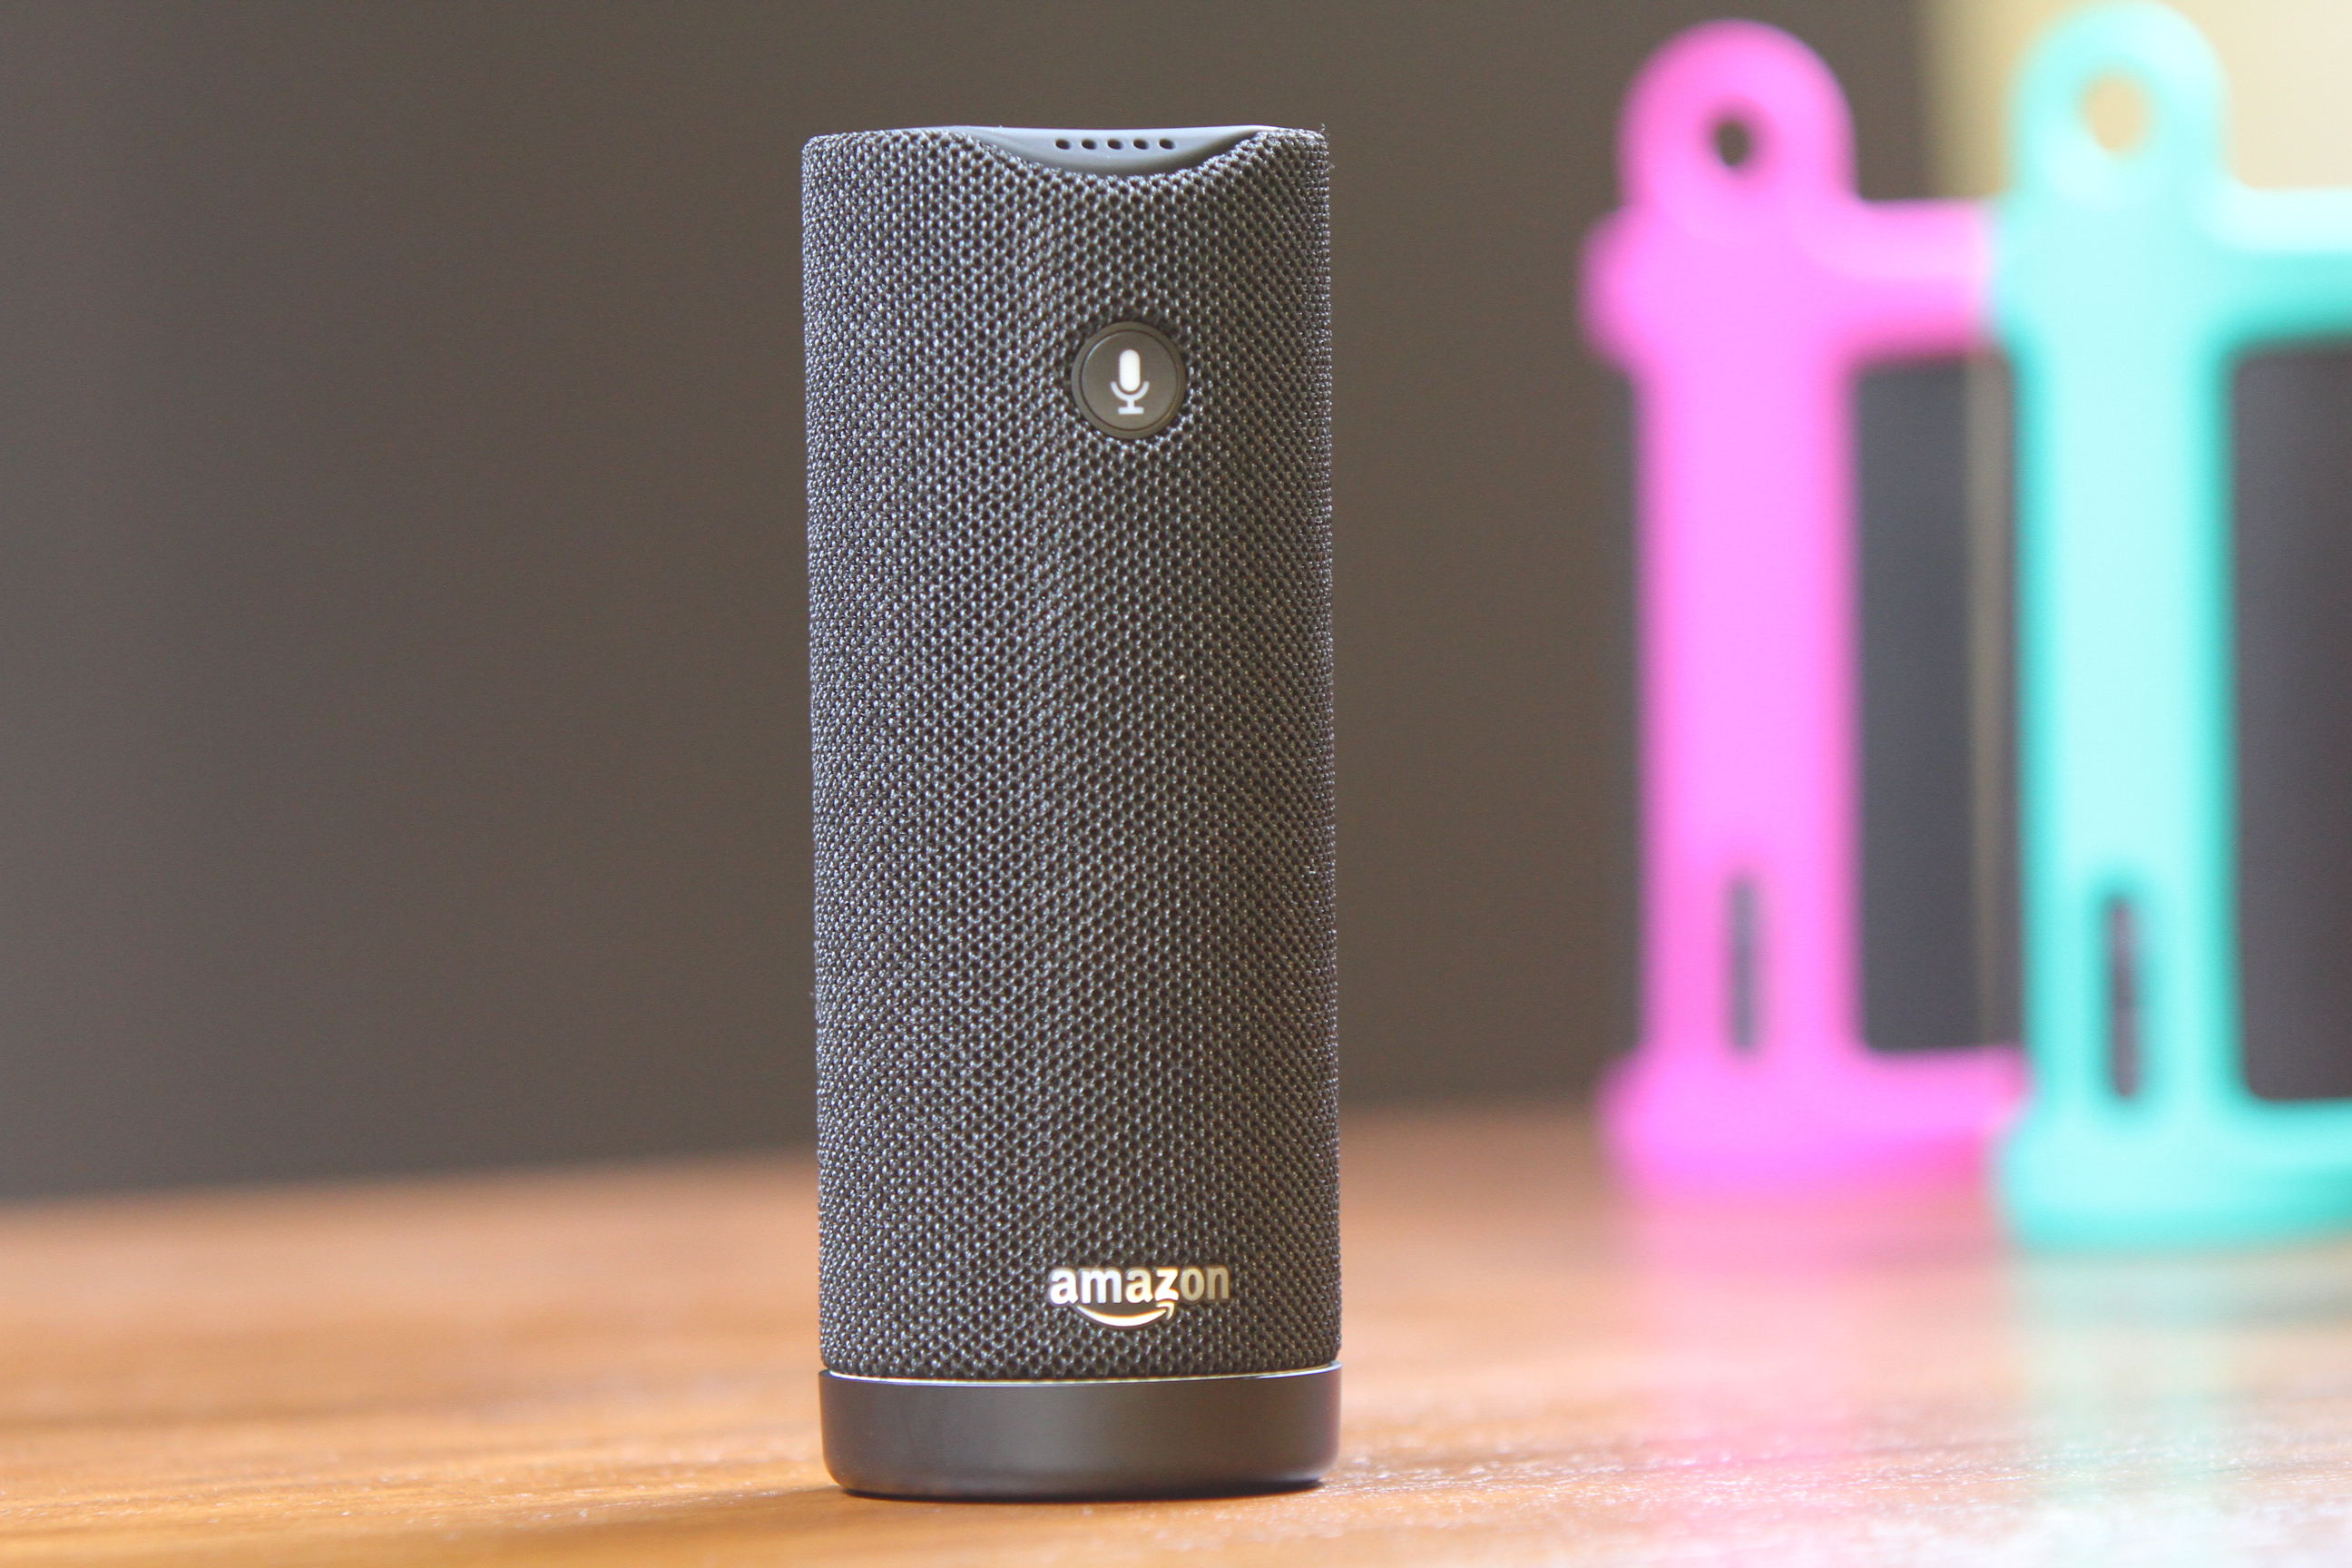 Amazon Tap: A smaller Echo device that's portable and Alexa-enabled.